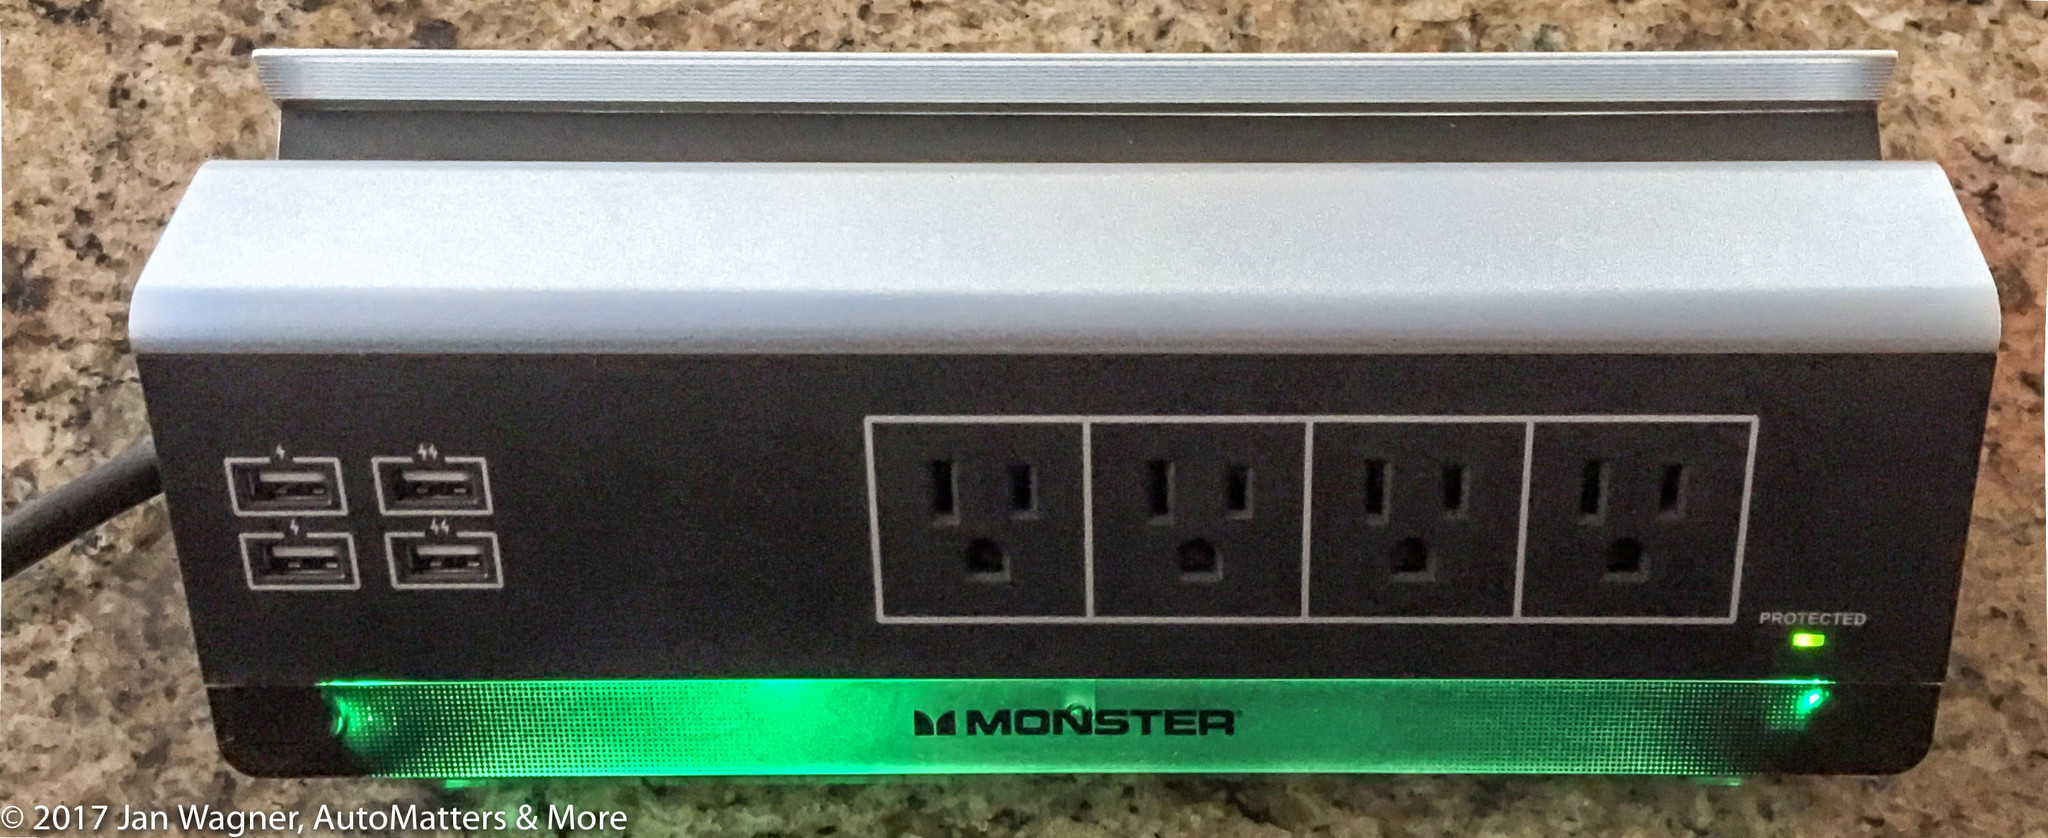 Monster Power & Charging Station - Large